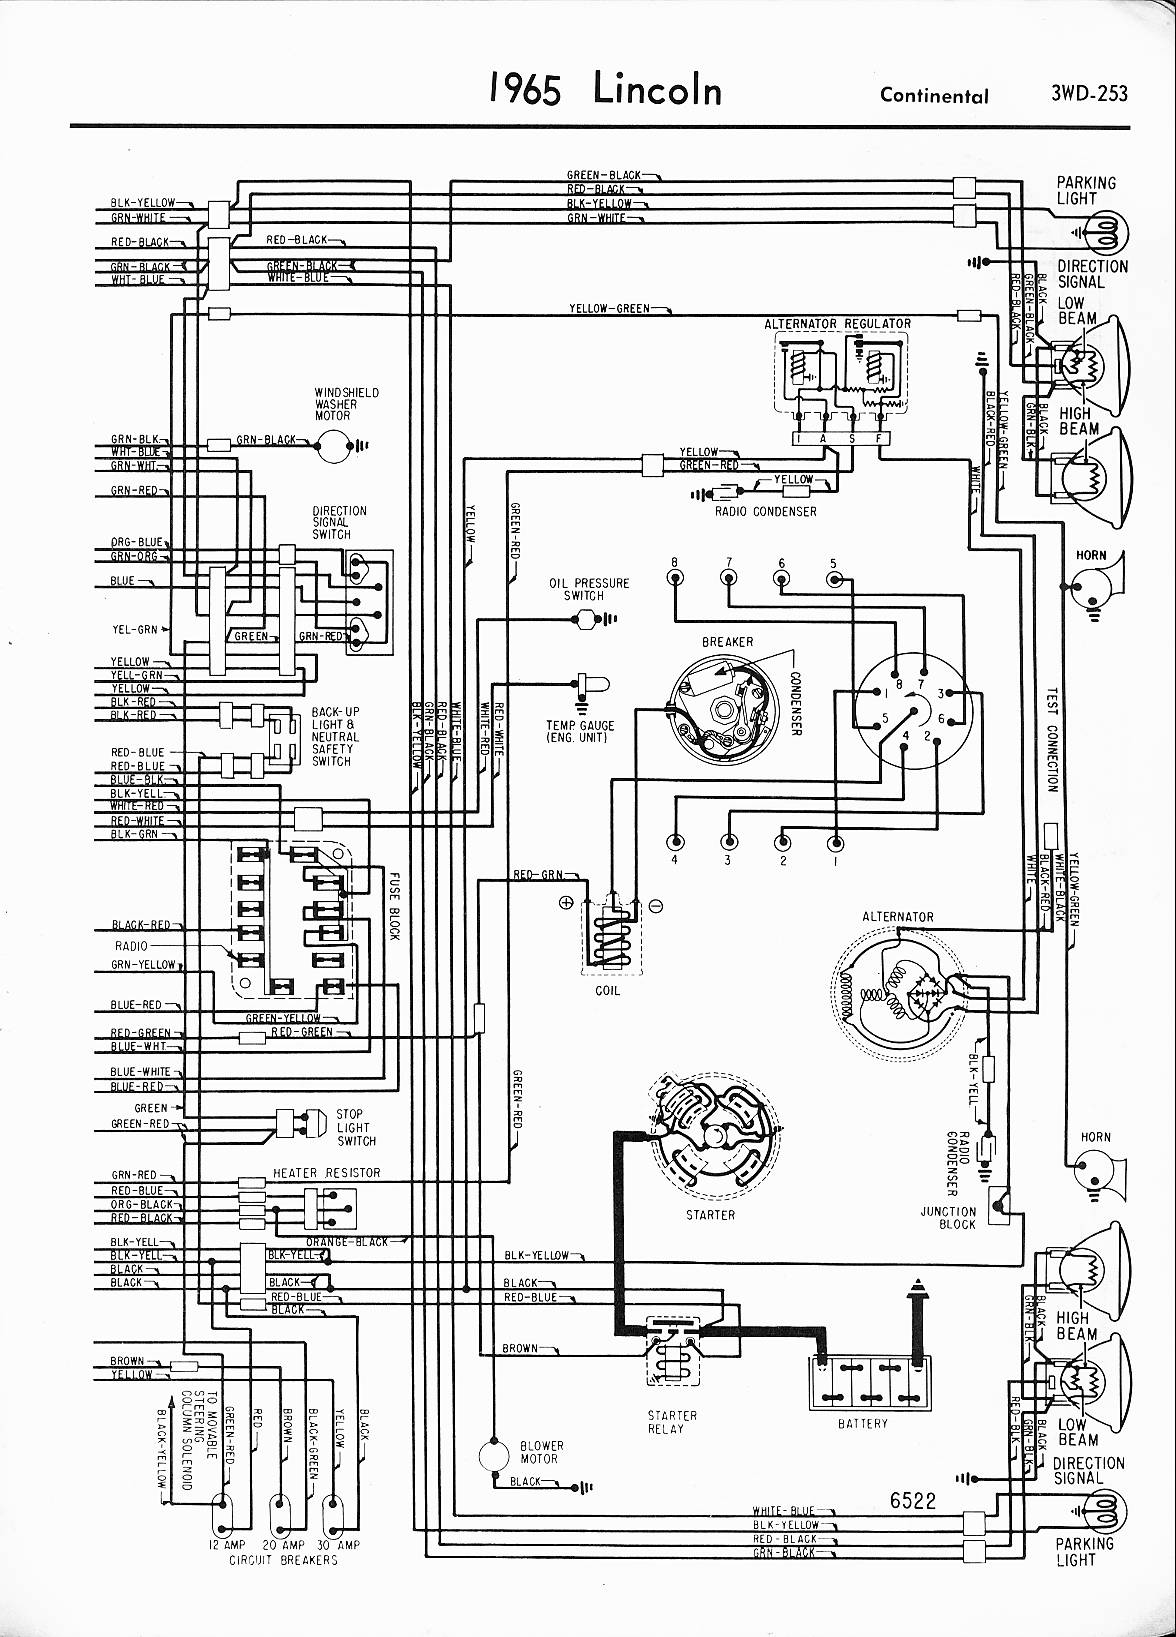 2000 lincoln town car fuel pump wiring diagram - wiring diagram book  trace-will-a - trace-will-a.prolocoisoletremiti.it  prolocoisoletremiti.it